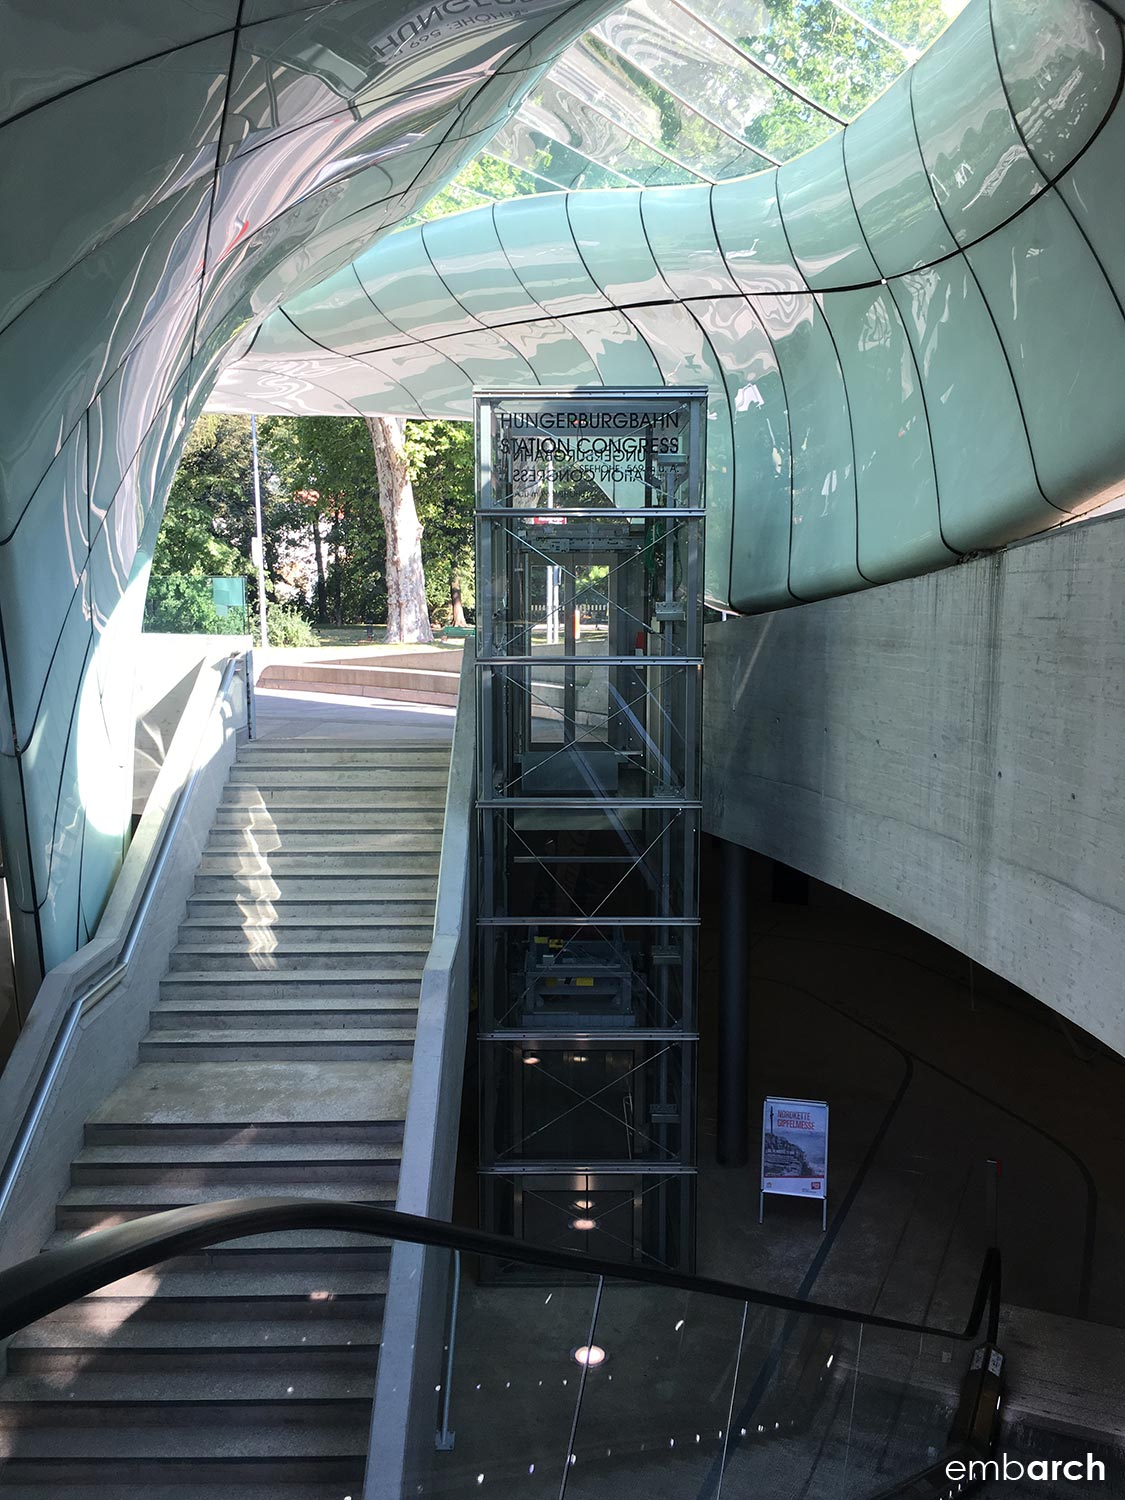 Congress Station - interior, looking down from street level